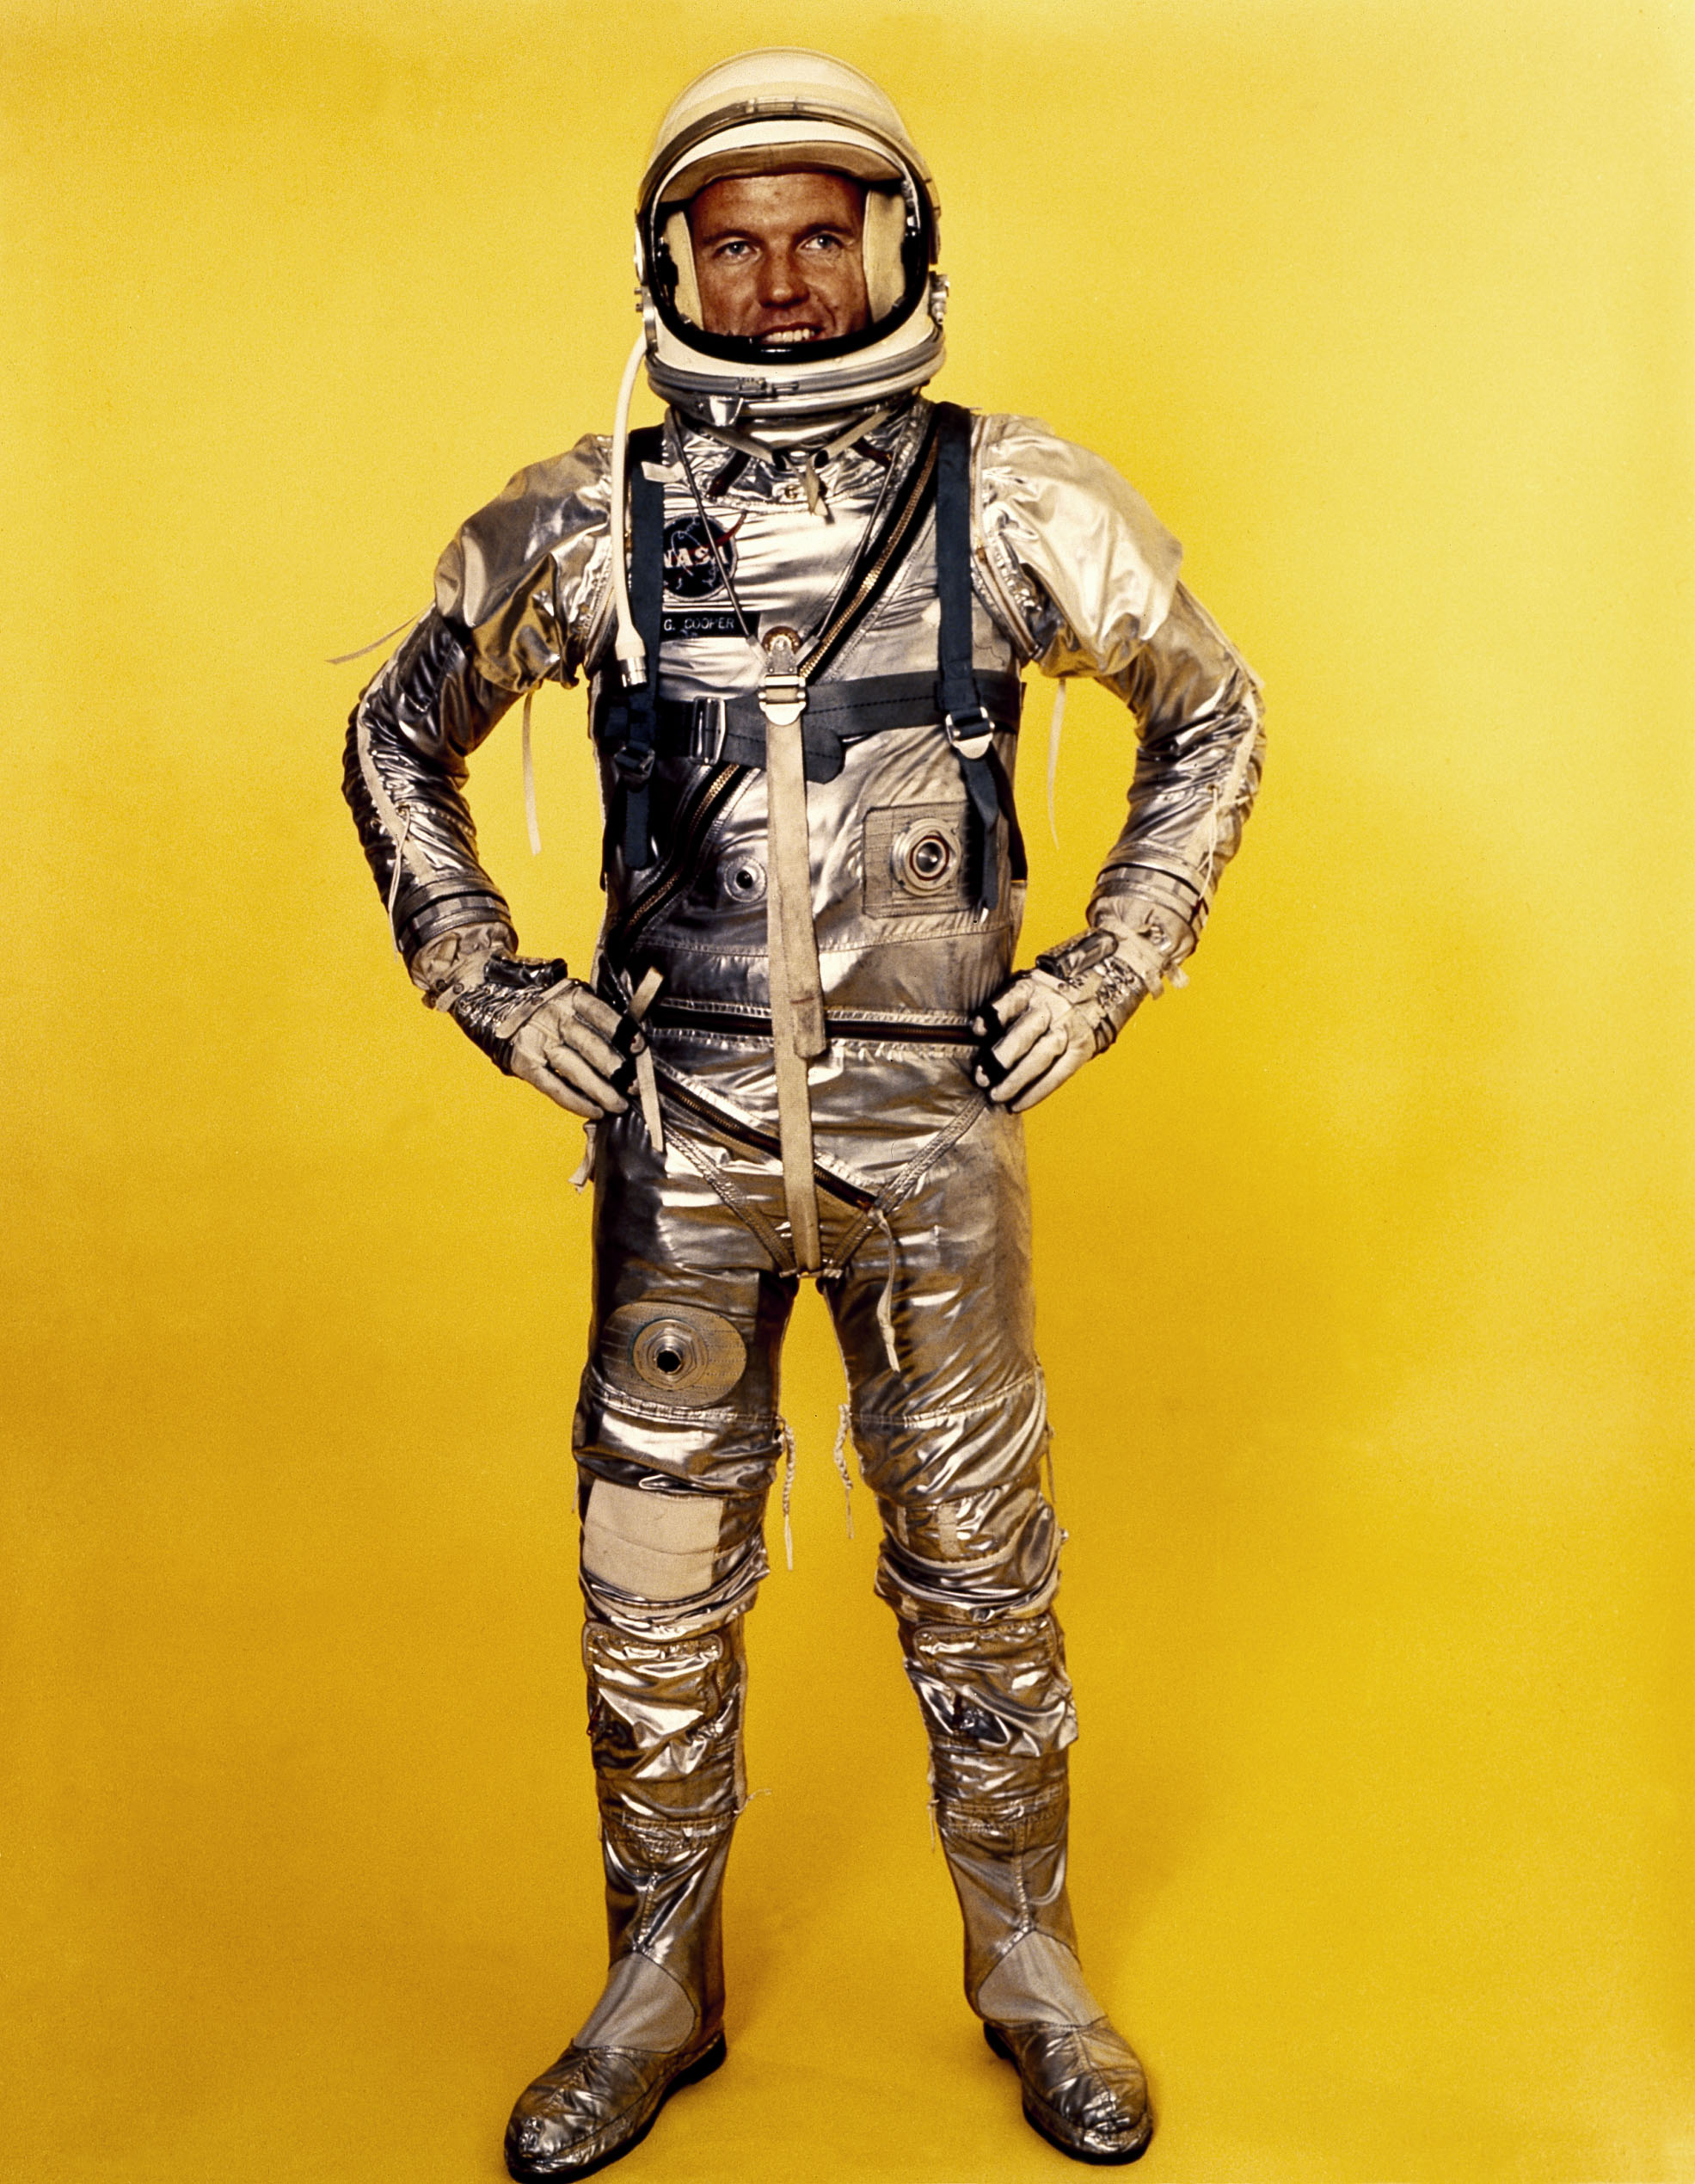 Vintage flight suits